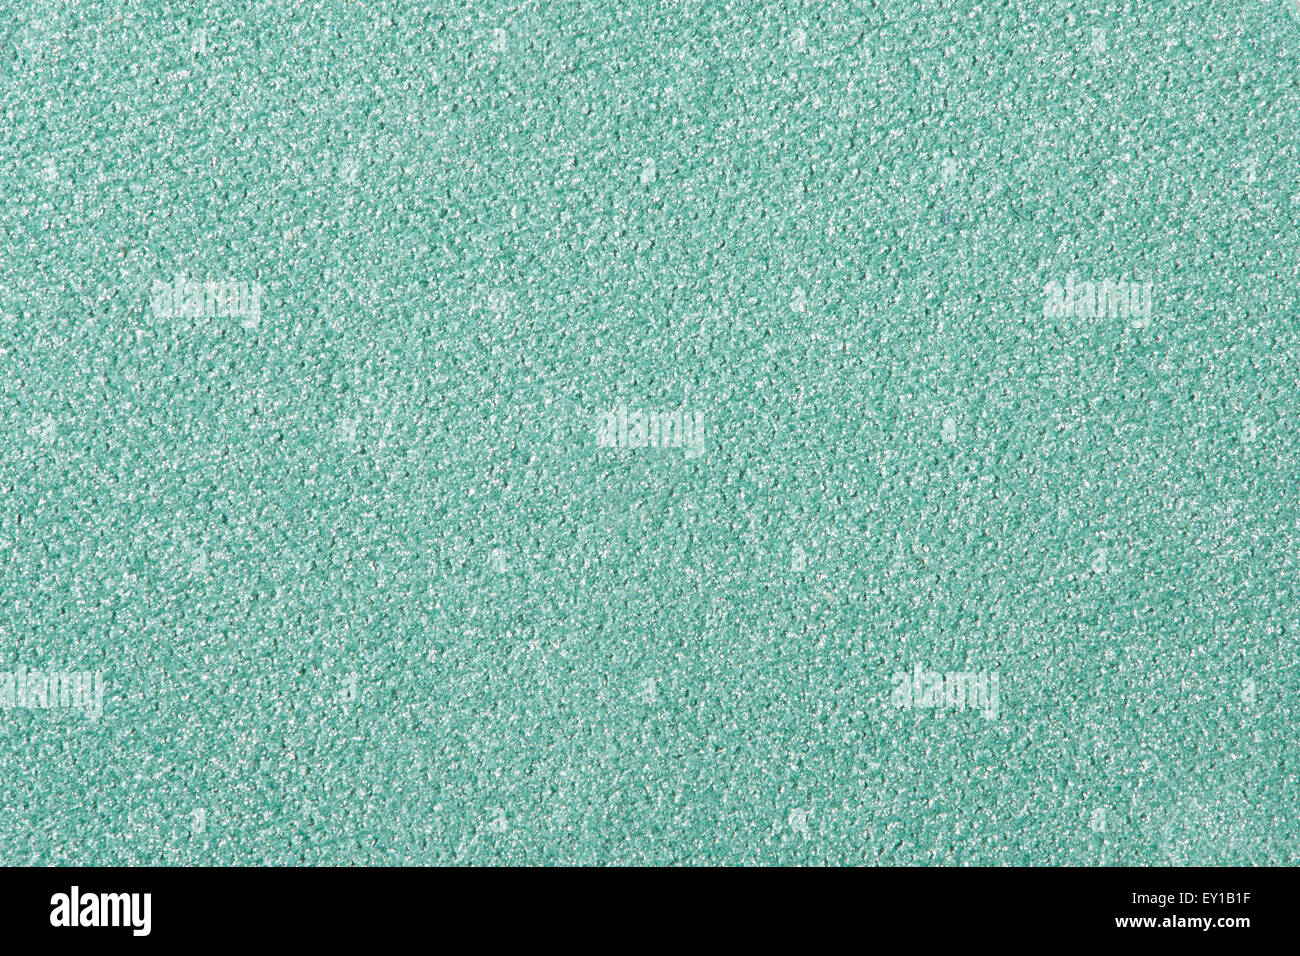 Green eye shadow cosmetic texture background - Stock Image